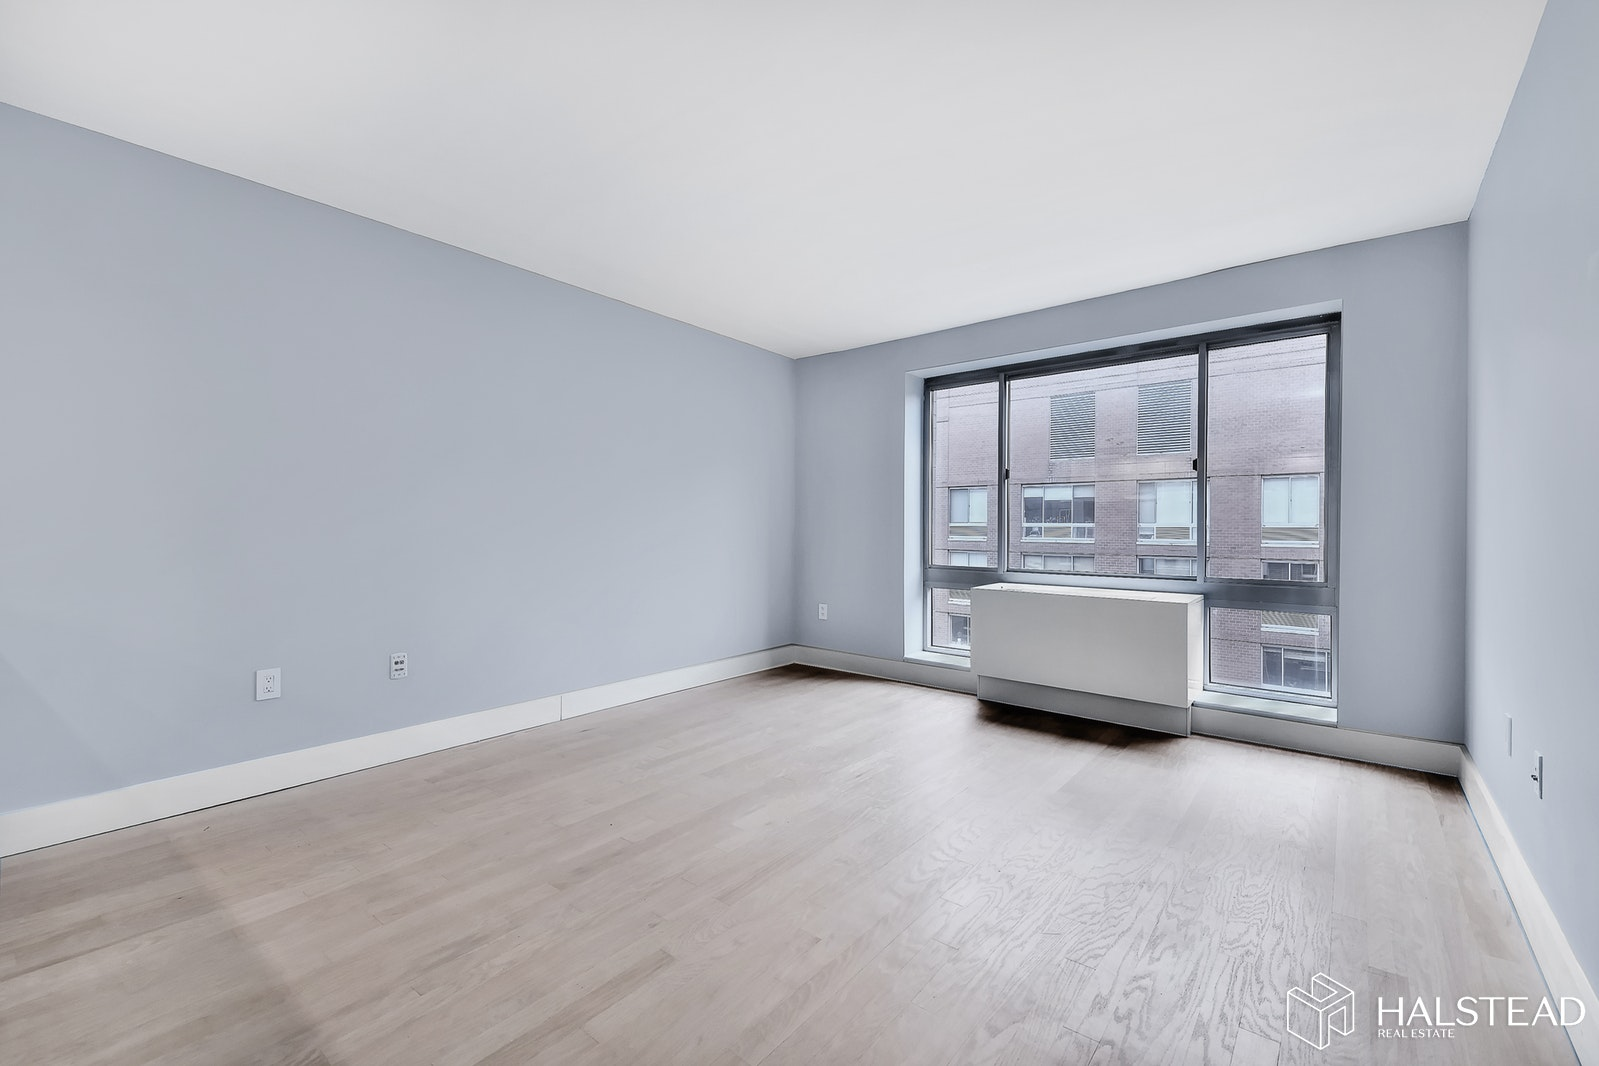 NO BROKER FEE - Available only through summer of 2021. One of the largest 1BR units in the building at 706' & one of the very few that's been completely renovated and is available to rent now. Wonderful northern views over the courtyard and of the Hudson Yards, Empire State and tons of direct sunlight. There's an entrance to the famous High-Line Park on the corner. Privacy assured as there's no other neighbor adjoining the bedroom. Top-of-the-line appliances including Miele and Bosch stove/convection oven, a fully redone bathroom, in-unit W/D, and custom counter/breakfast bar are all special touches that set this apt apart from the run of the mill 1BRs in the building. The building has a 2000' gym, 10,000' residents' courtyard, a residents' lounge with pool table and kitchen, on-site garage, bike storage & F/T DRMN & Super.. No Pets or Smokers. Available ASAP.